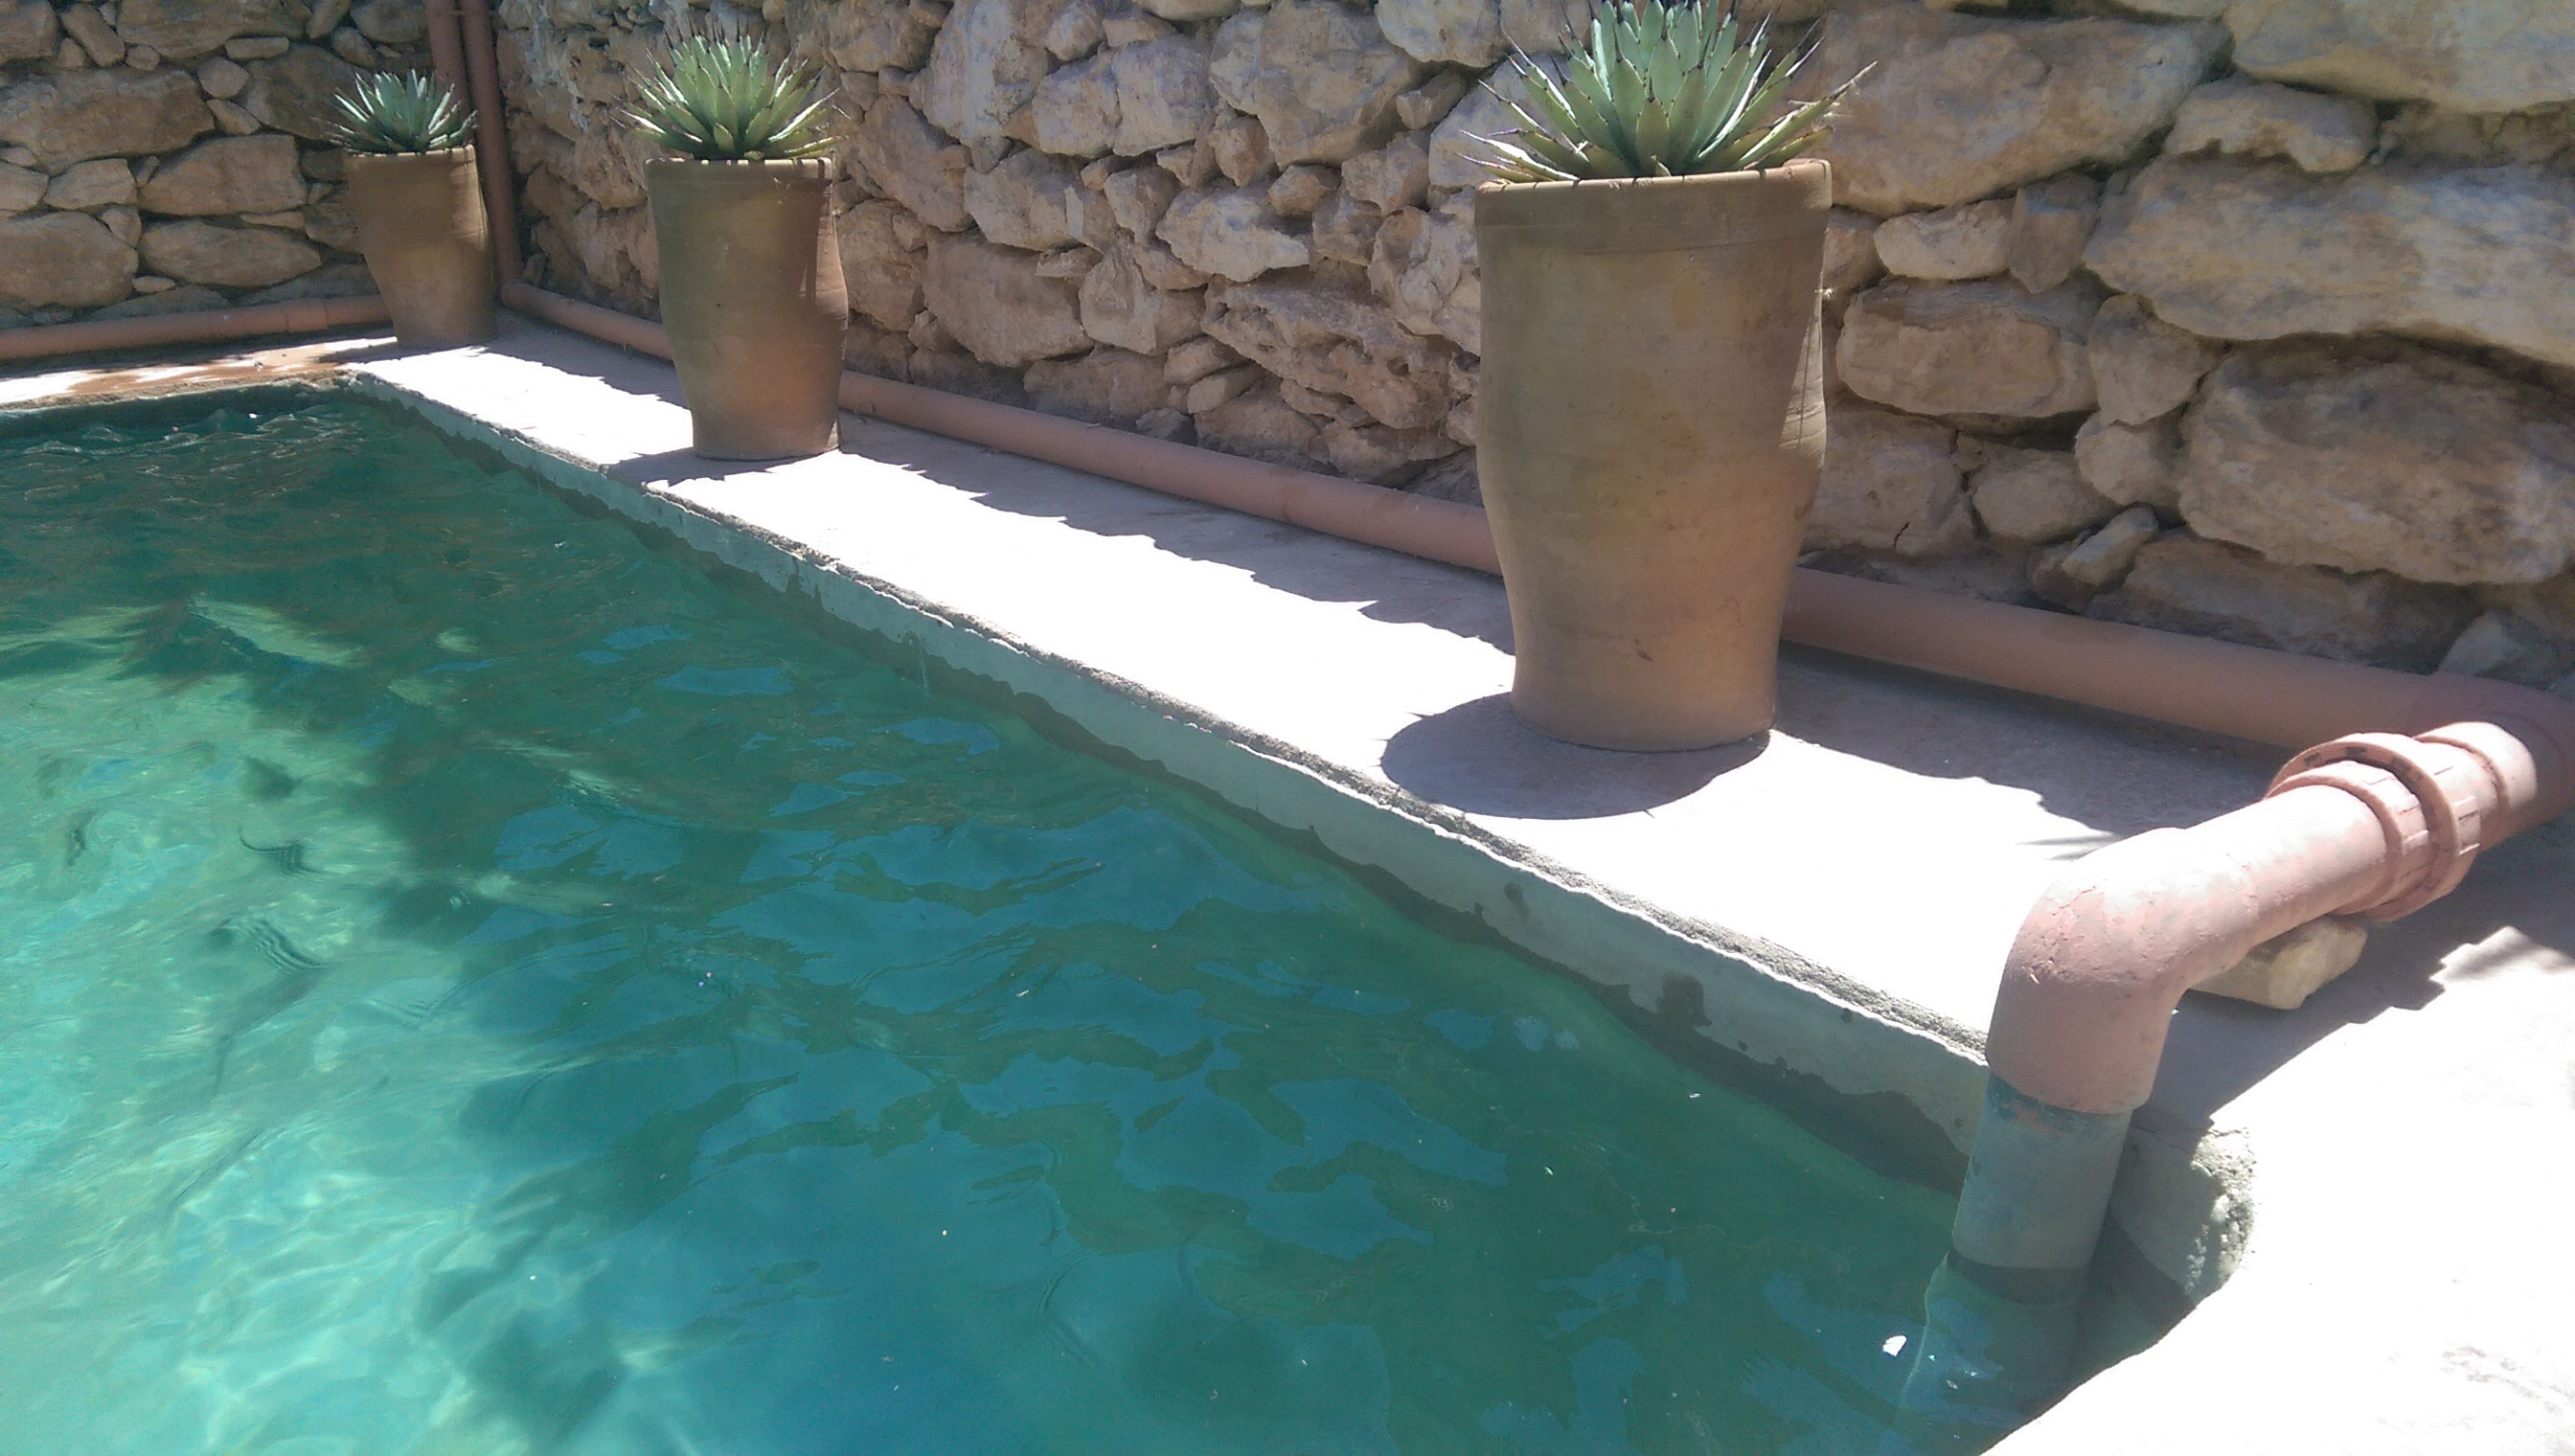 Top 10 tips for building an affordable diy natural pool for Build your own swimming pool